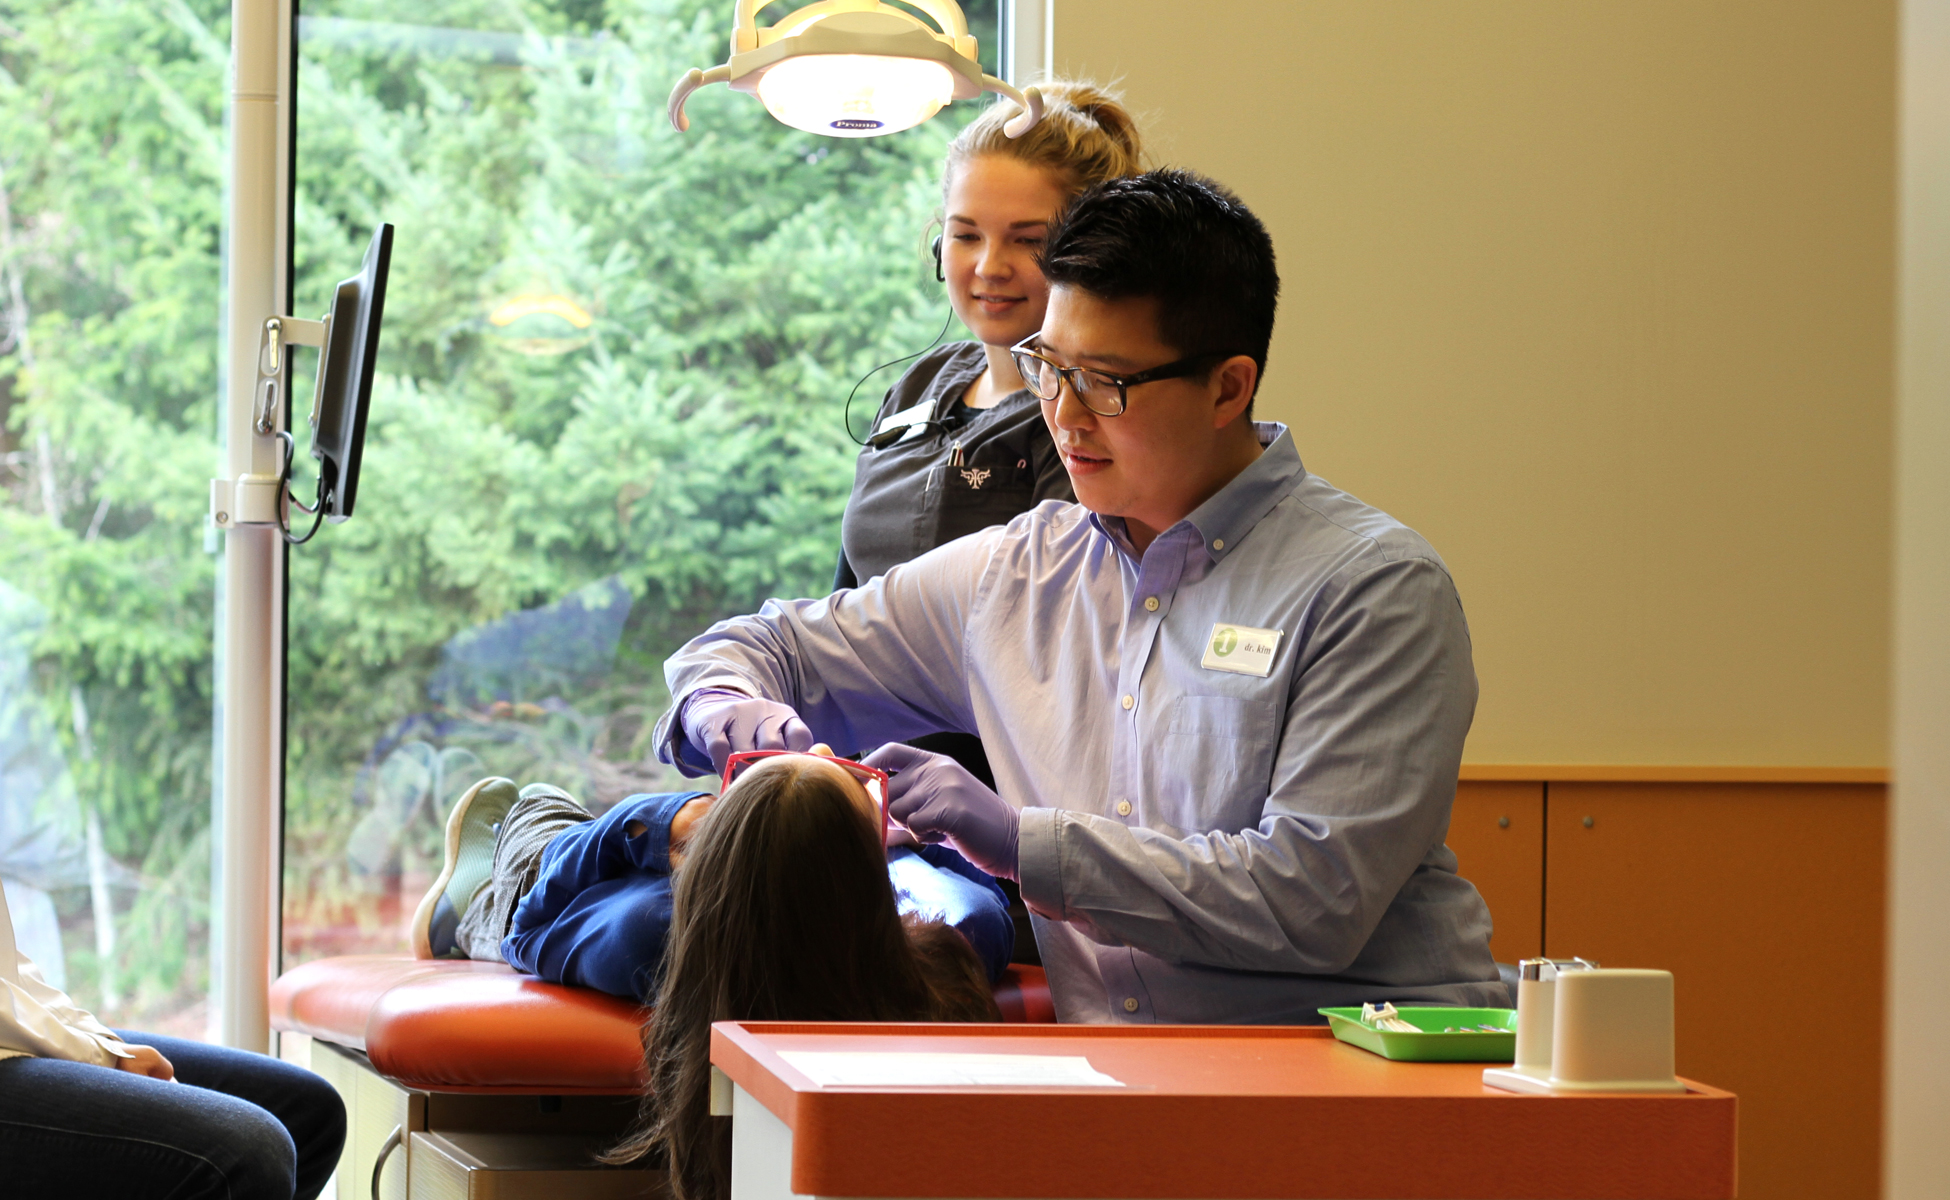 Everyone By One | Pediatric Dentistry | Lynnwood, WA | Bellevue, WA | Dentist | Blog